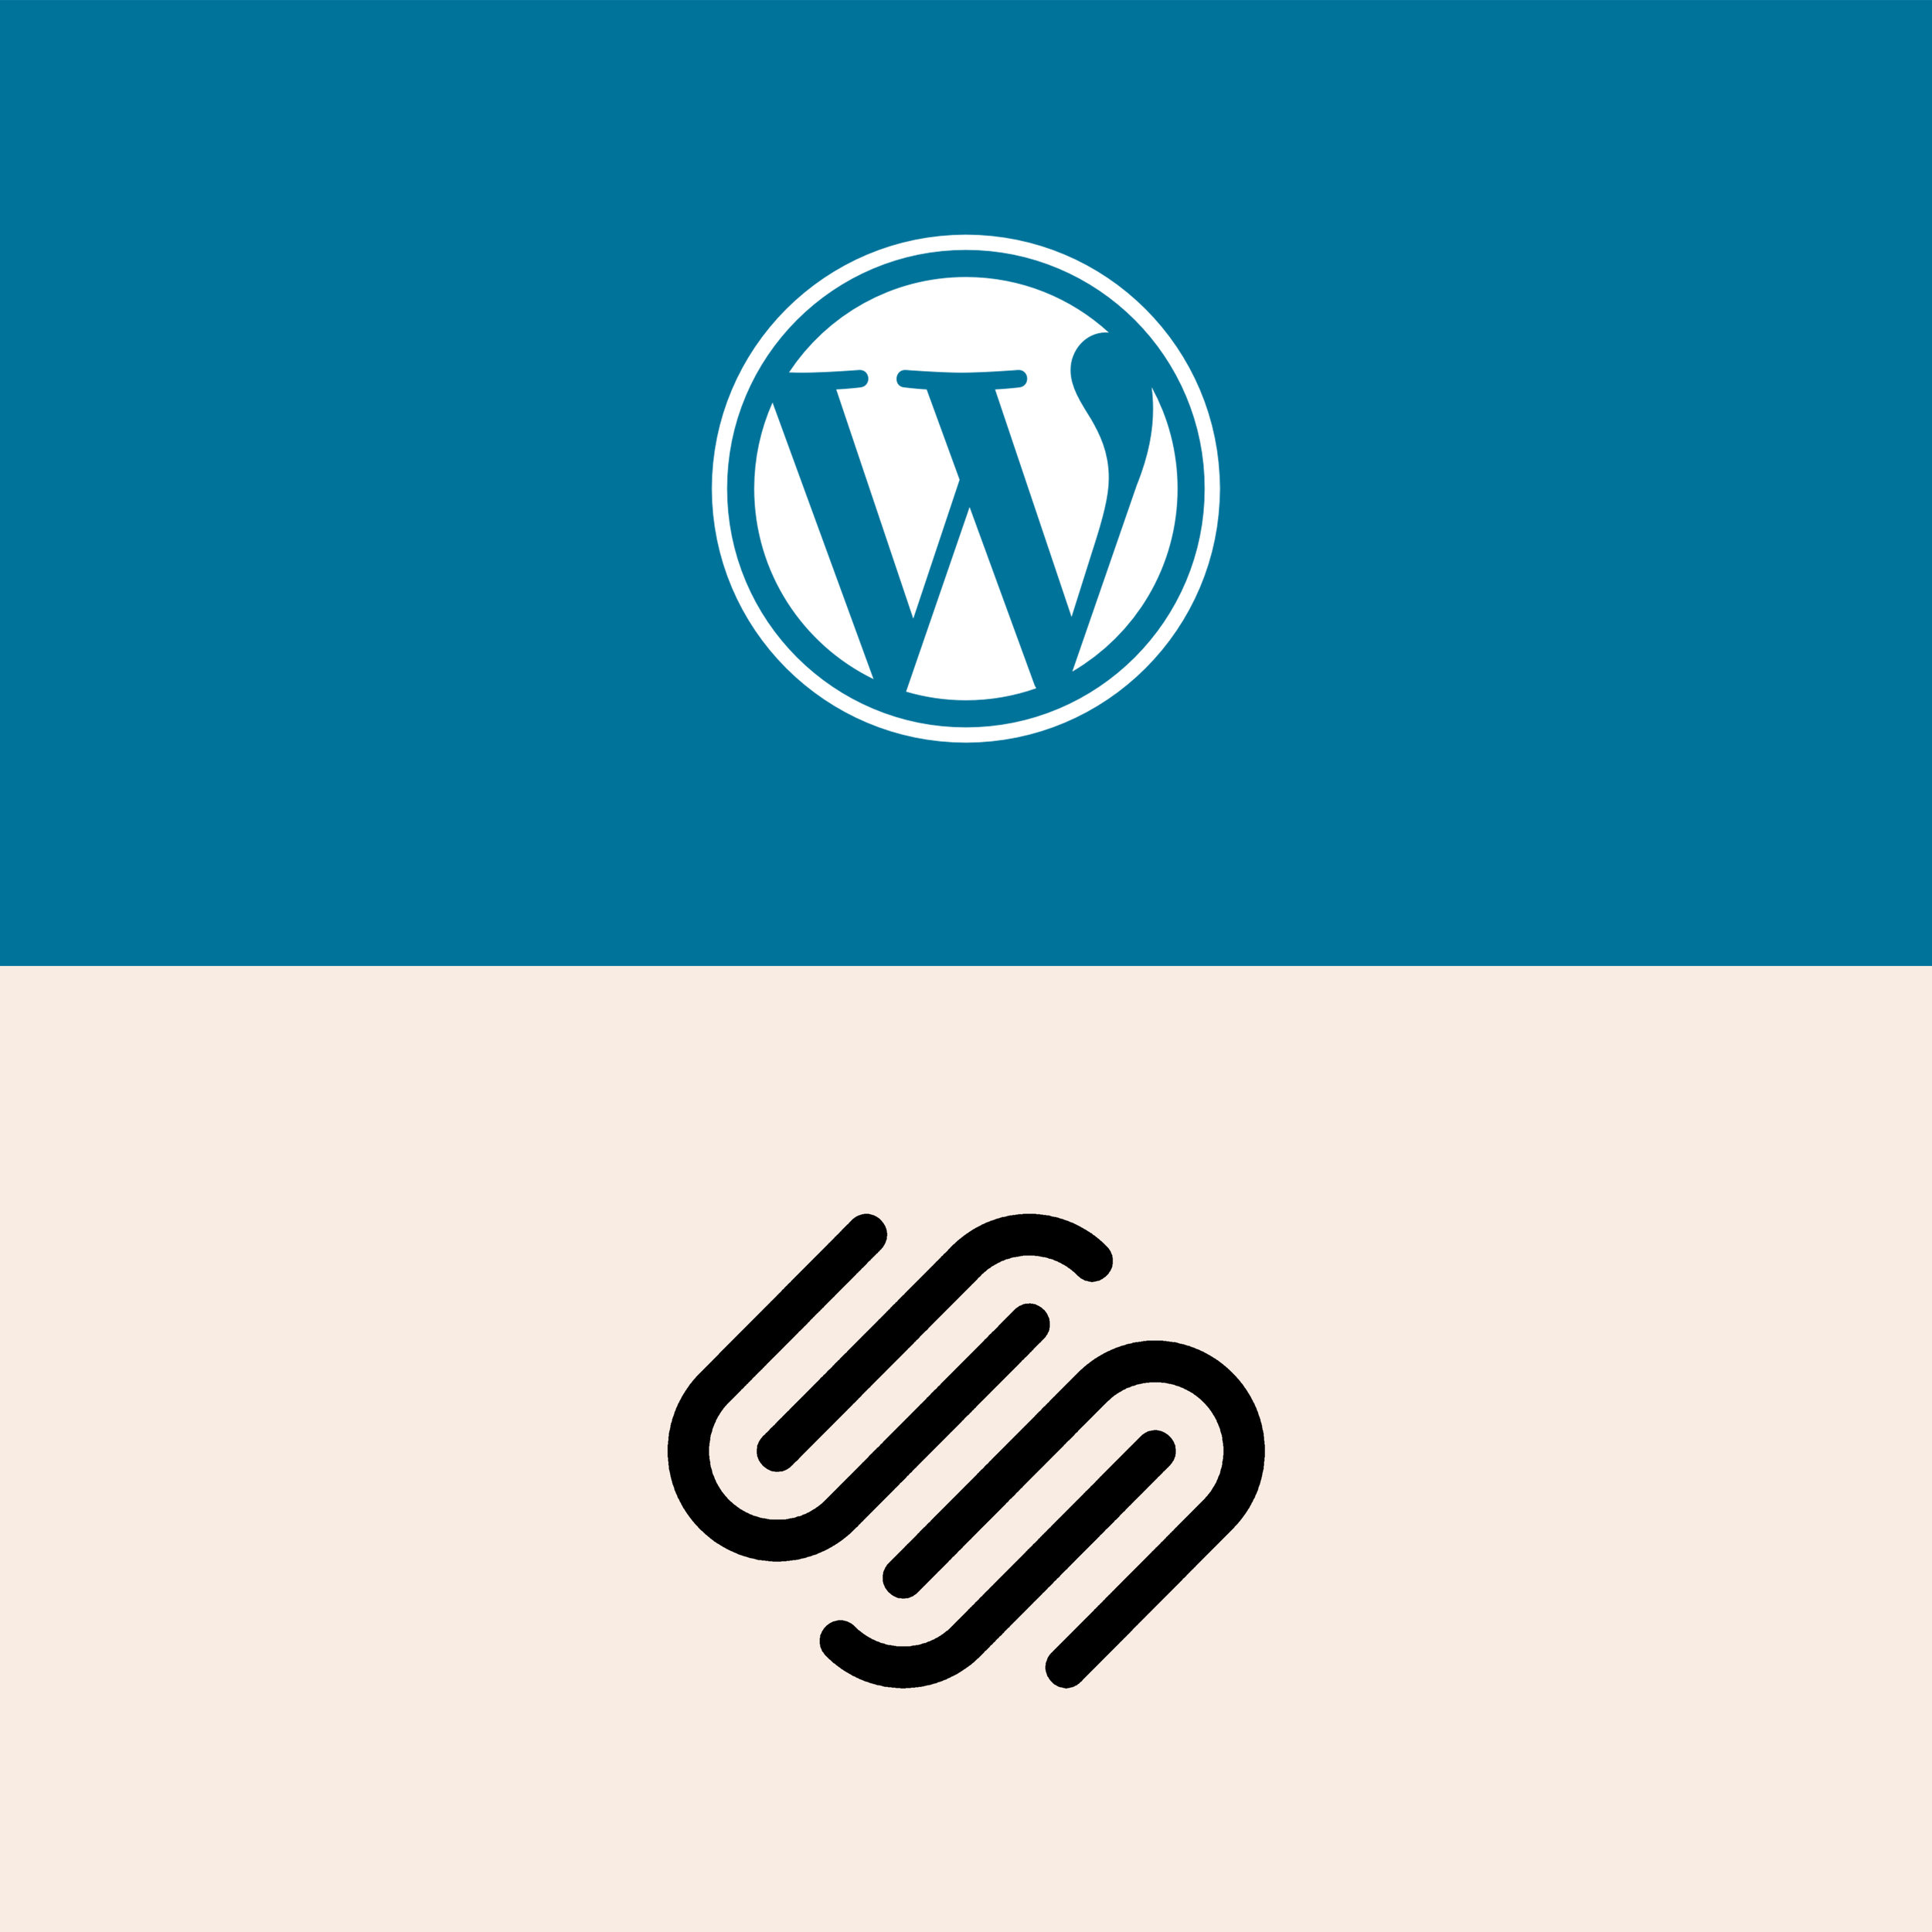 wordpress-squarespace.jpg